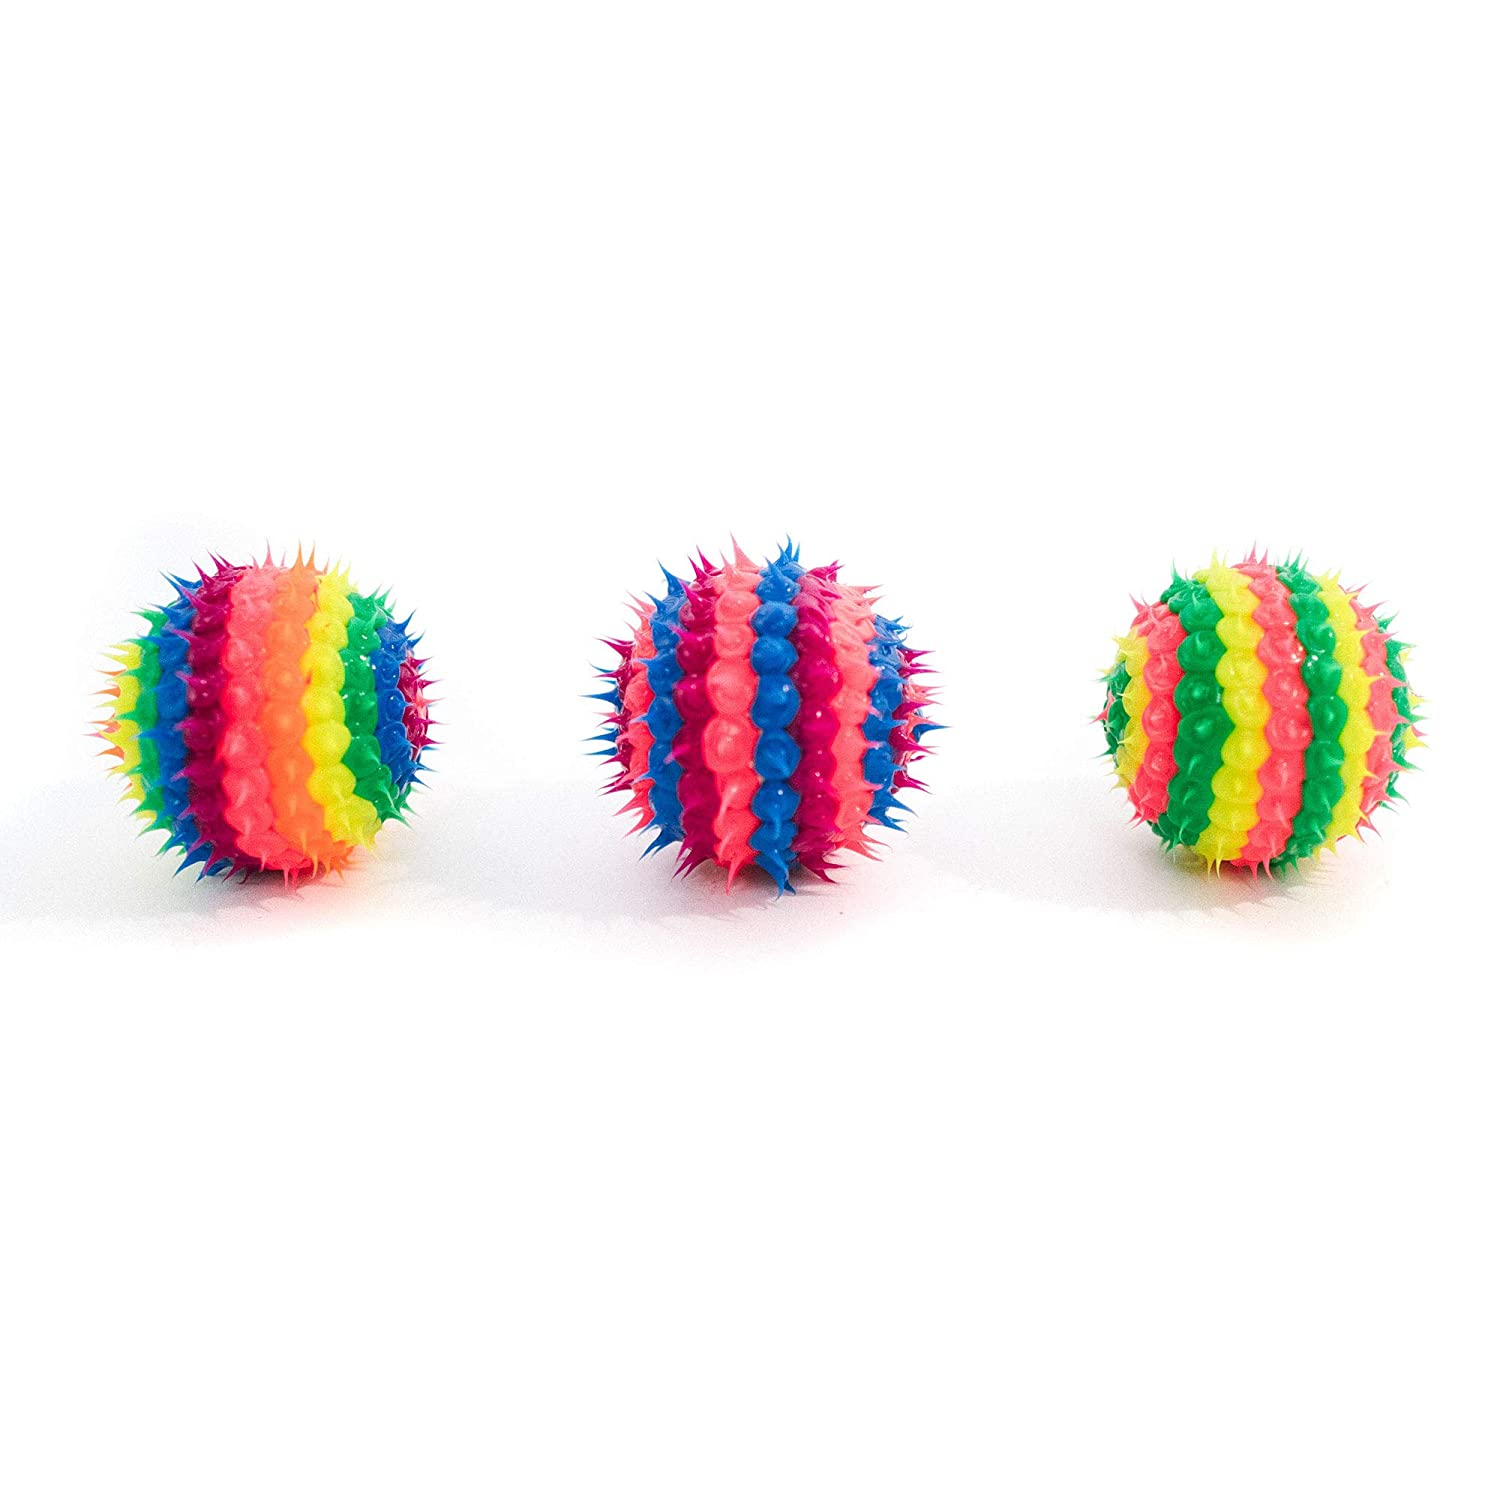 3PCS-Girls-1.5 Stocking Stuffers Toy Gifts for Holidays Great Party Favors ADD Anxiety Treat Bag Fillers Fidget Toy for ADHD Bouncy Hand Balls for Kids with Multicolored Soft Spikes